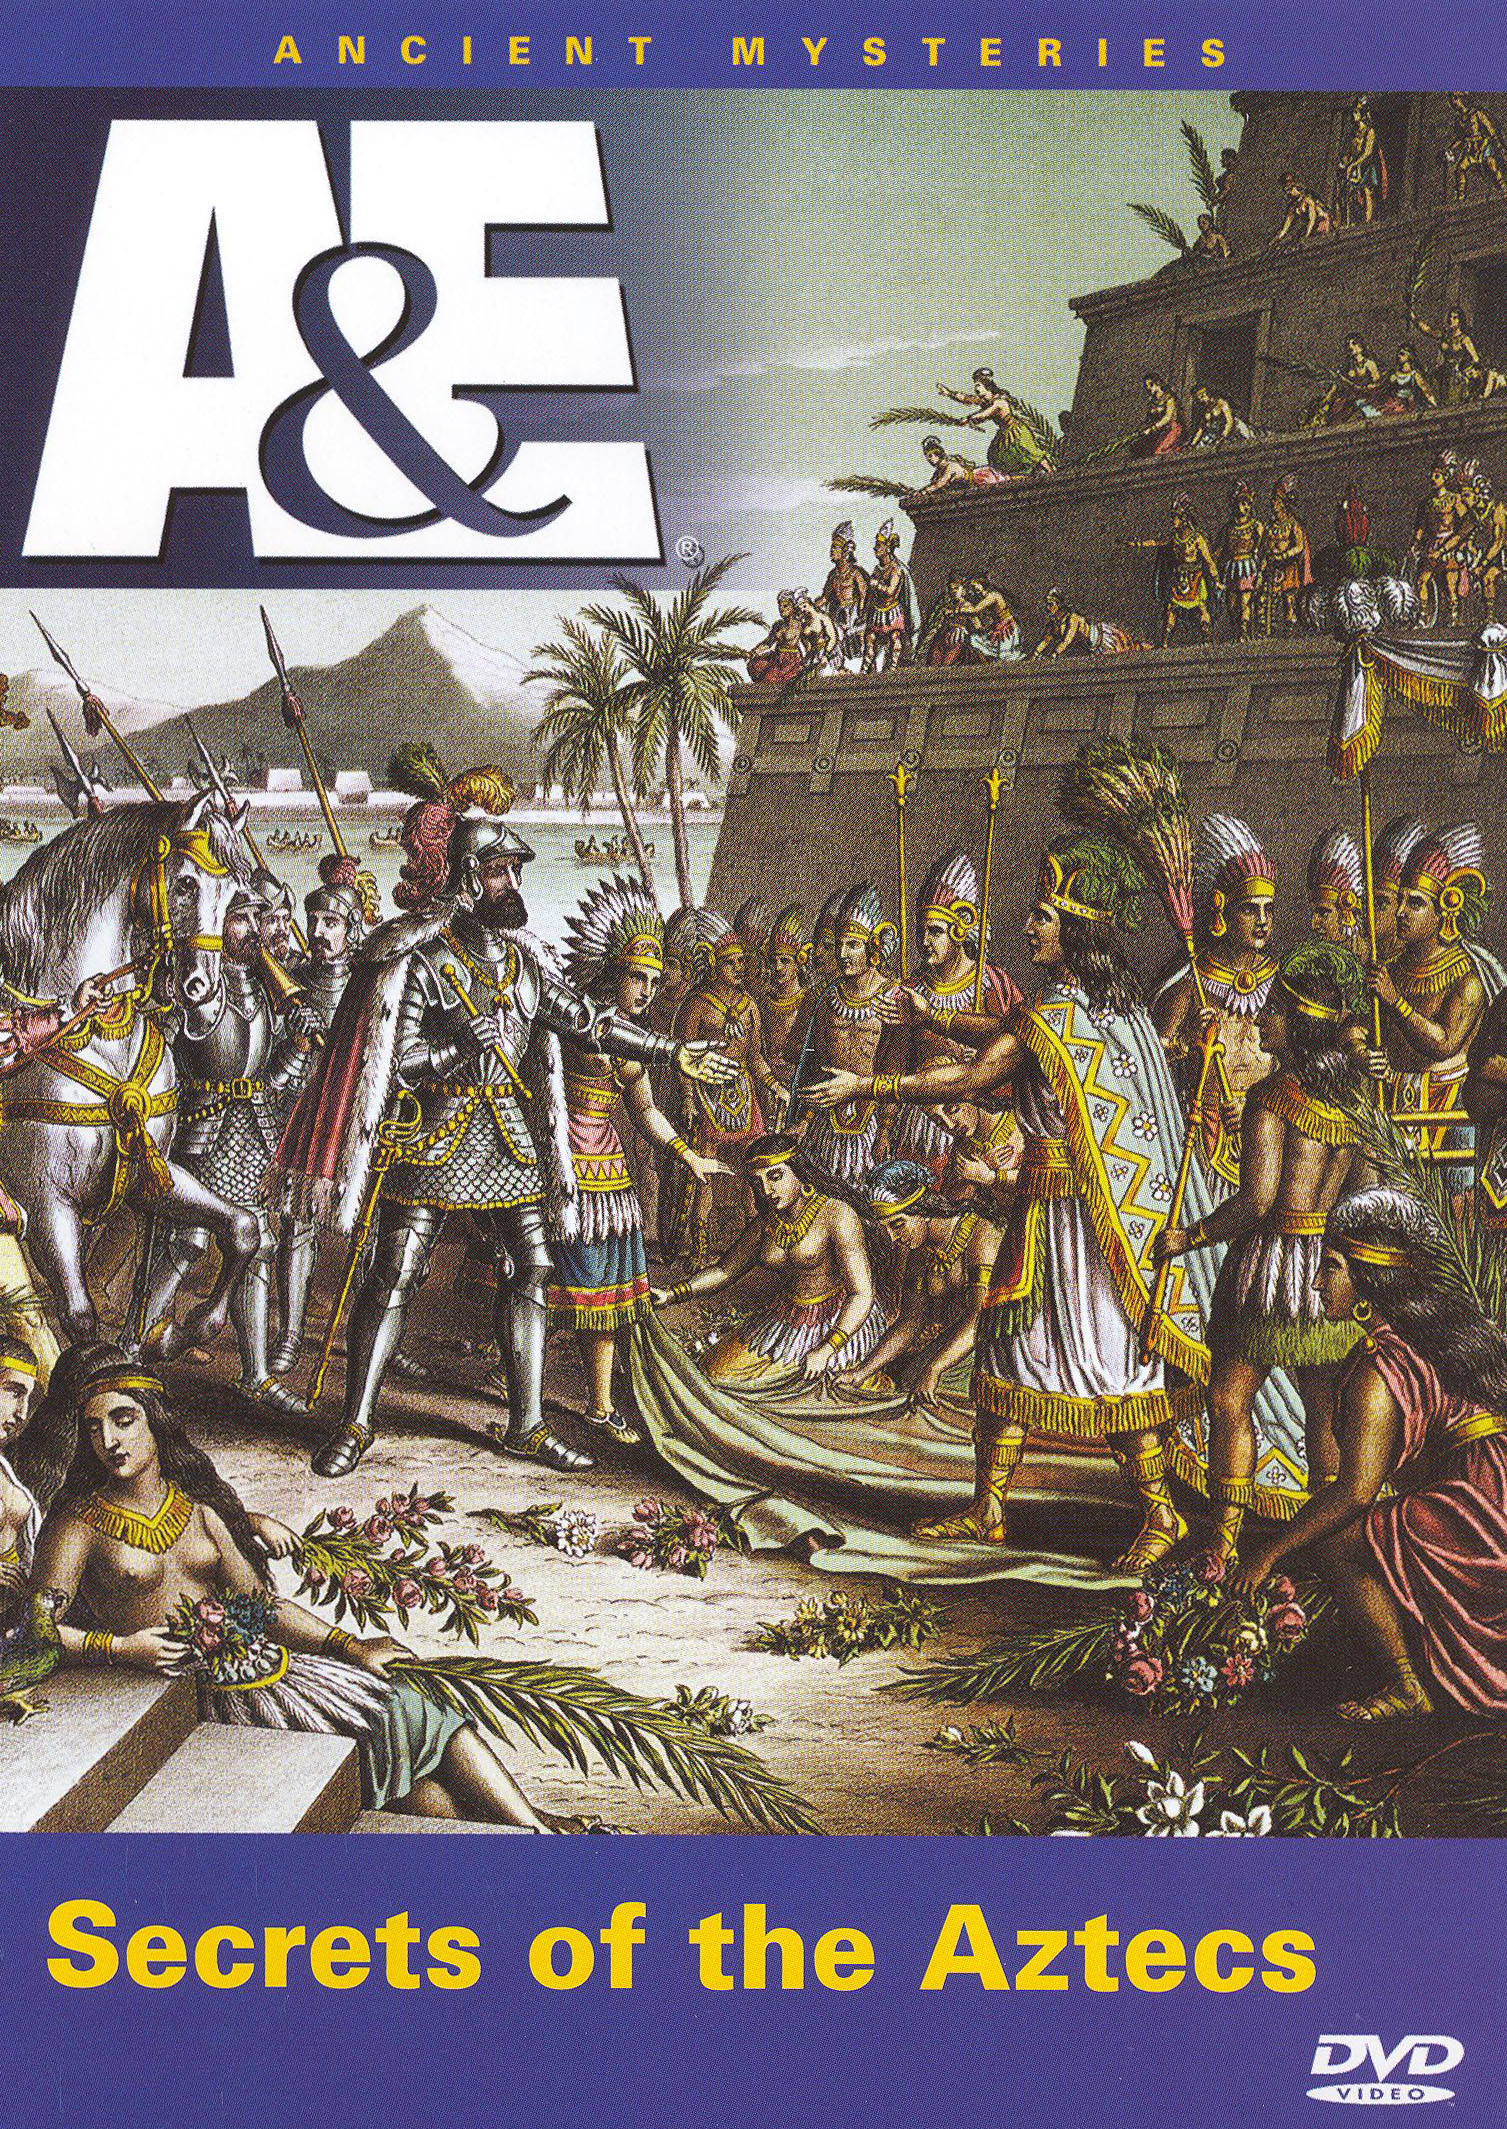 an overview of the aztec empire Star wars iii there are the various types of government an overview of the aztec civilization and empire history these can be the governments of continents on a.